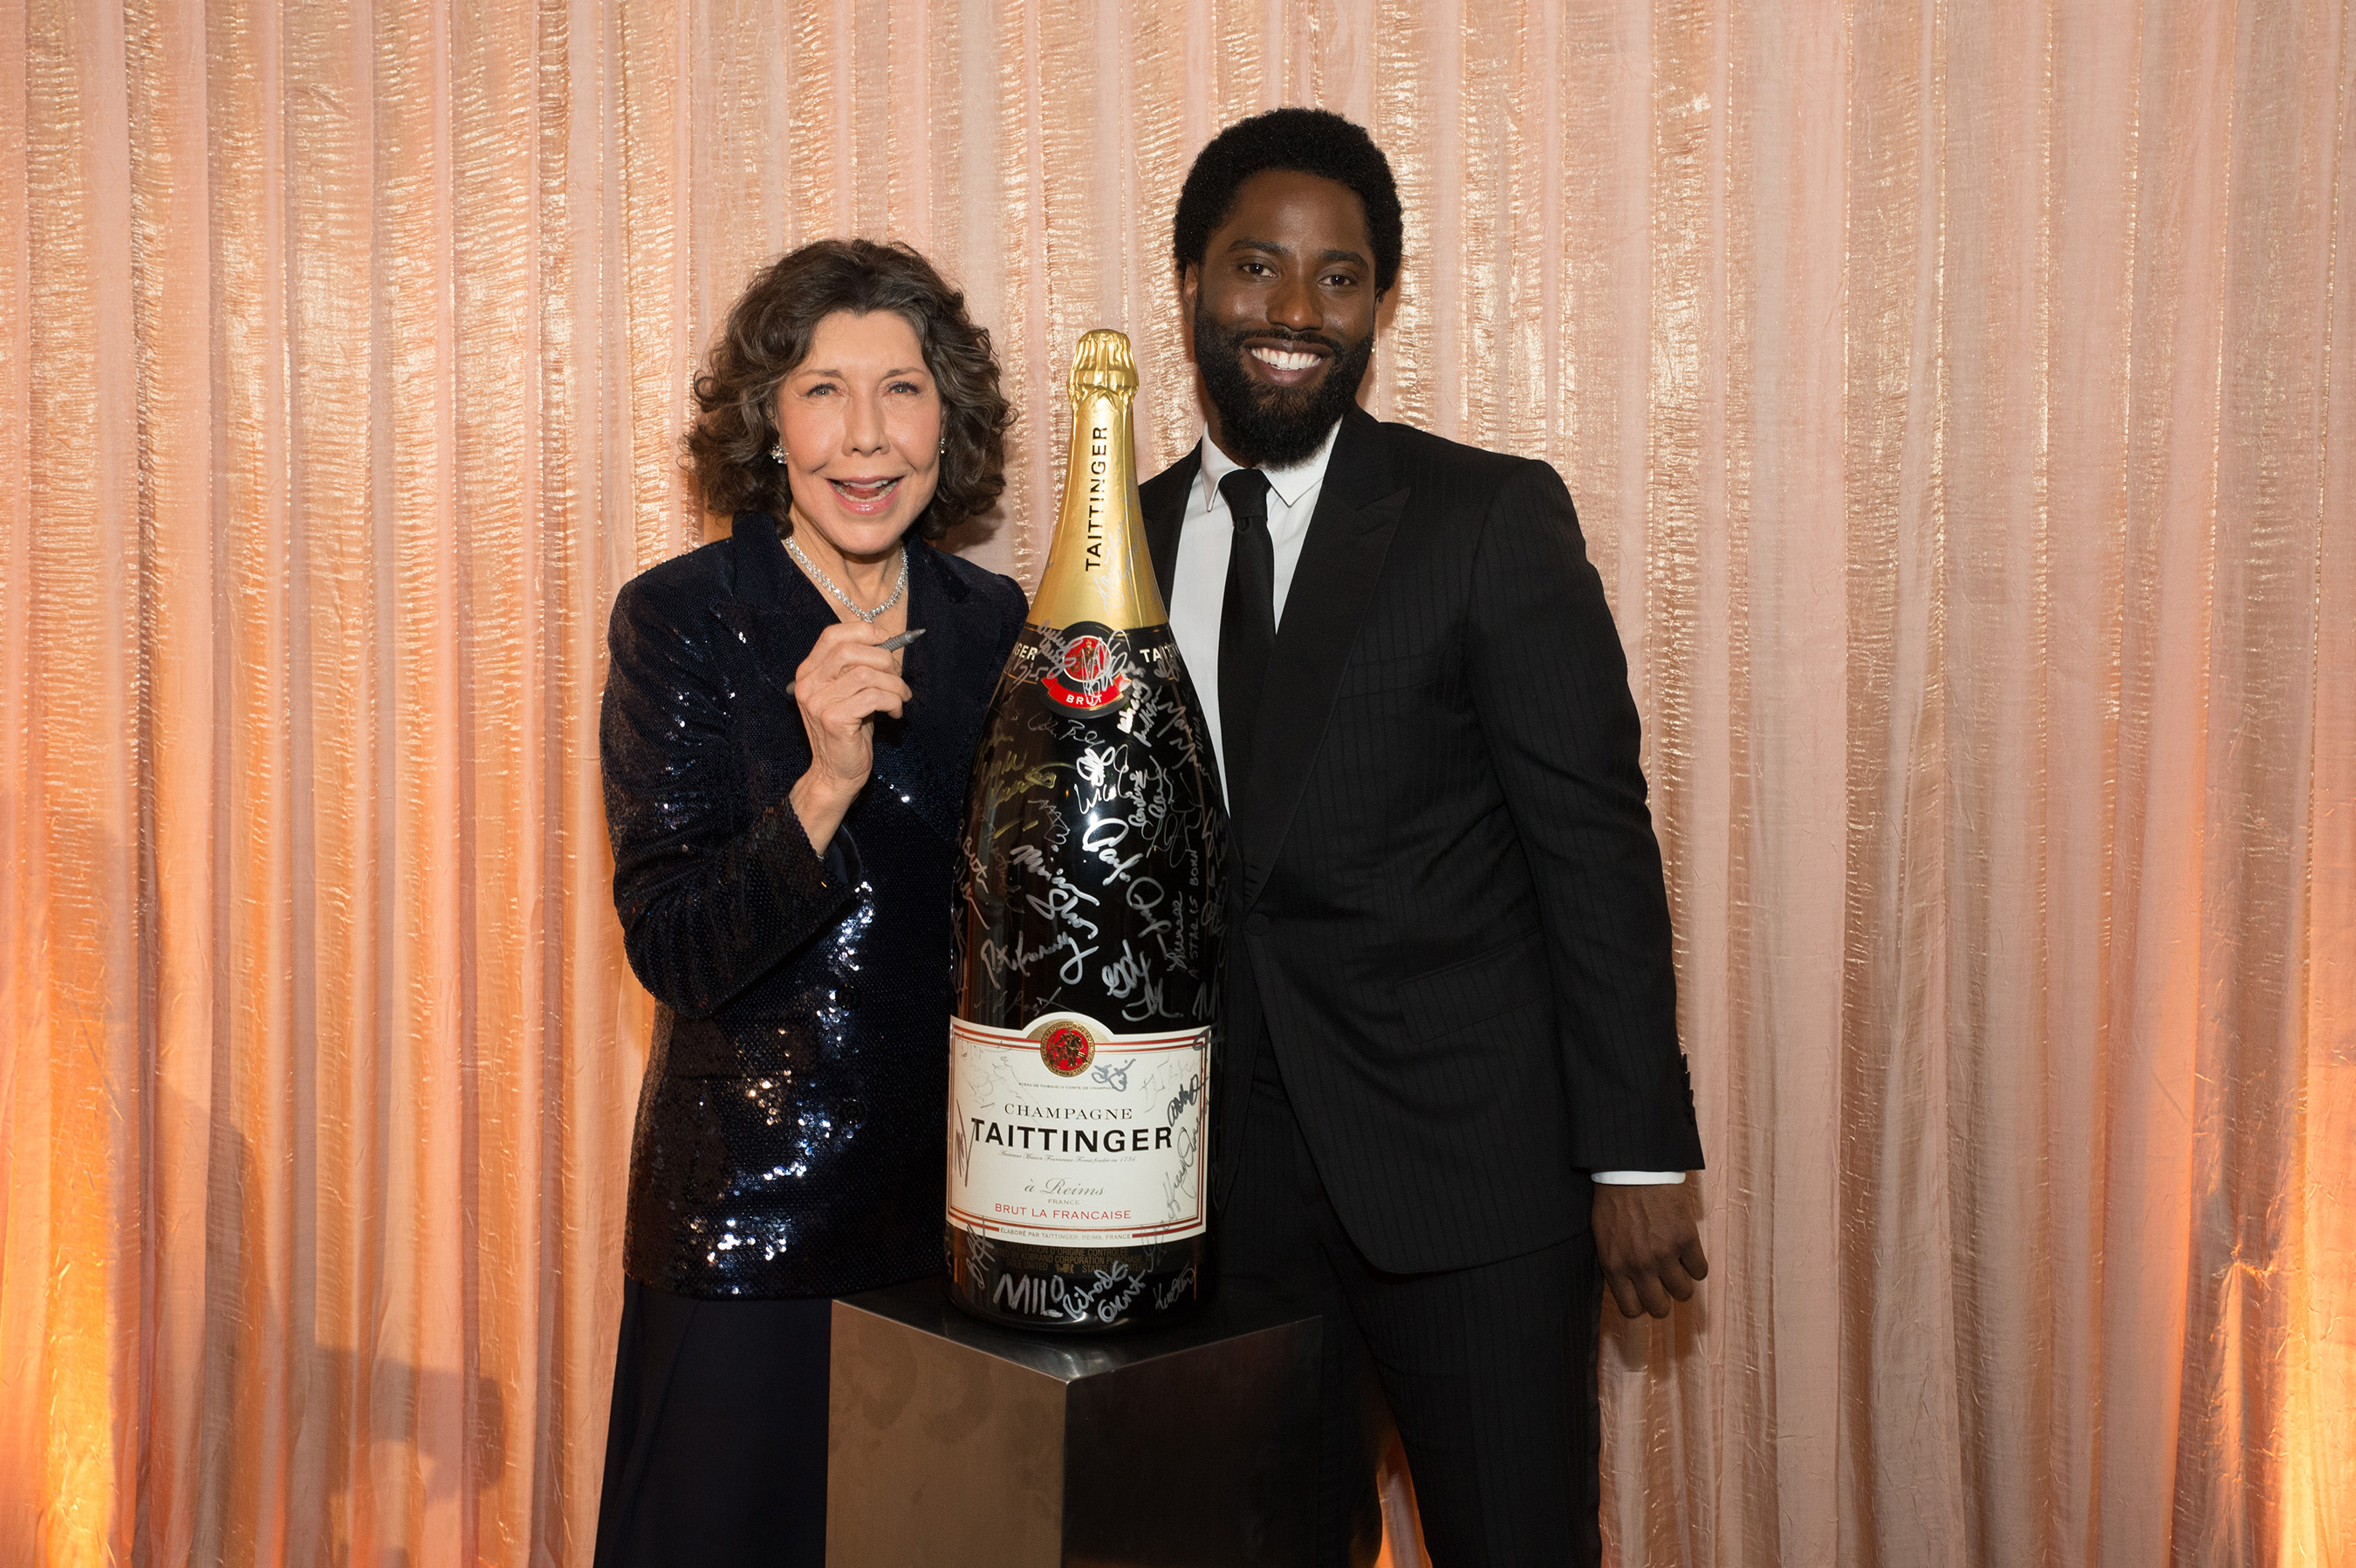 John David Washington & Lily Tomlin add their signatures to Champagne Taittinger's bottle activation at the 25th Annual Screen Actors Guild Awards on January 27, 2019.